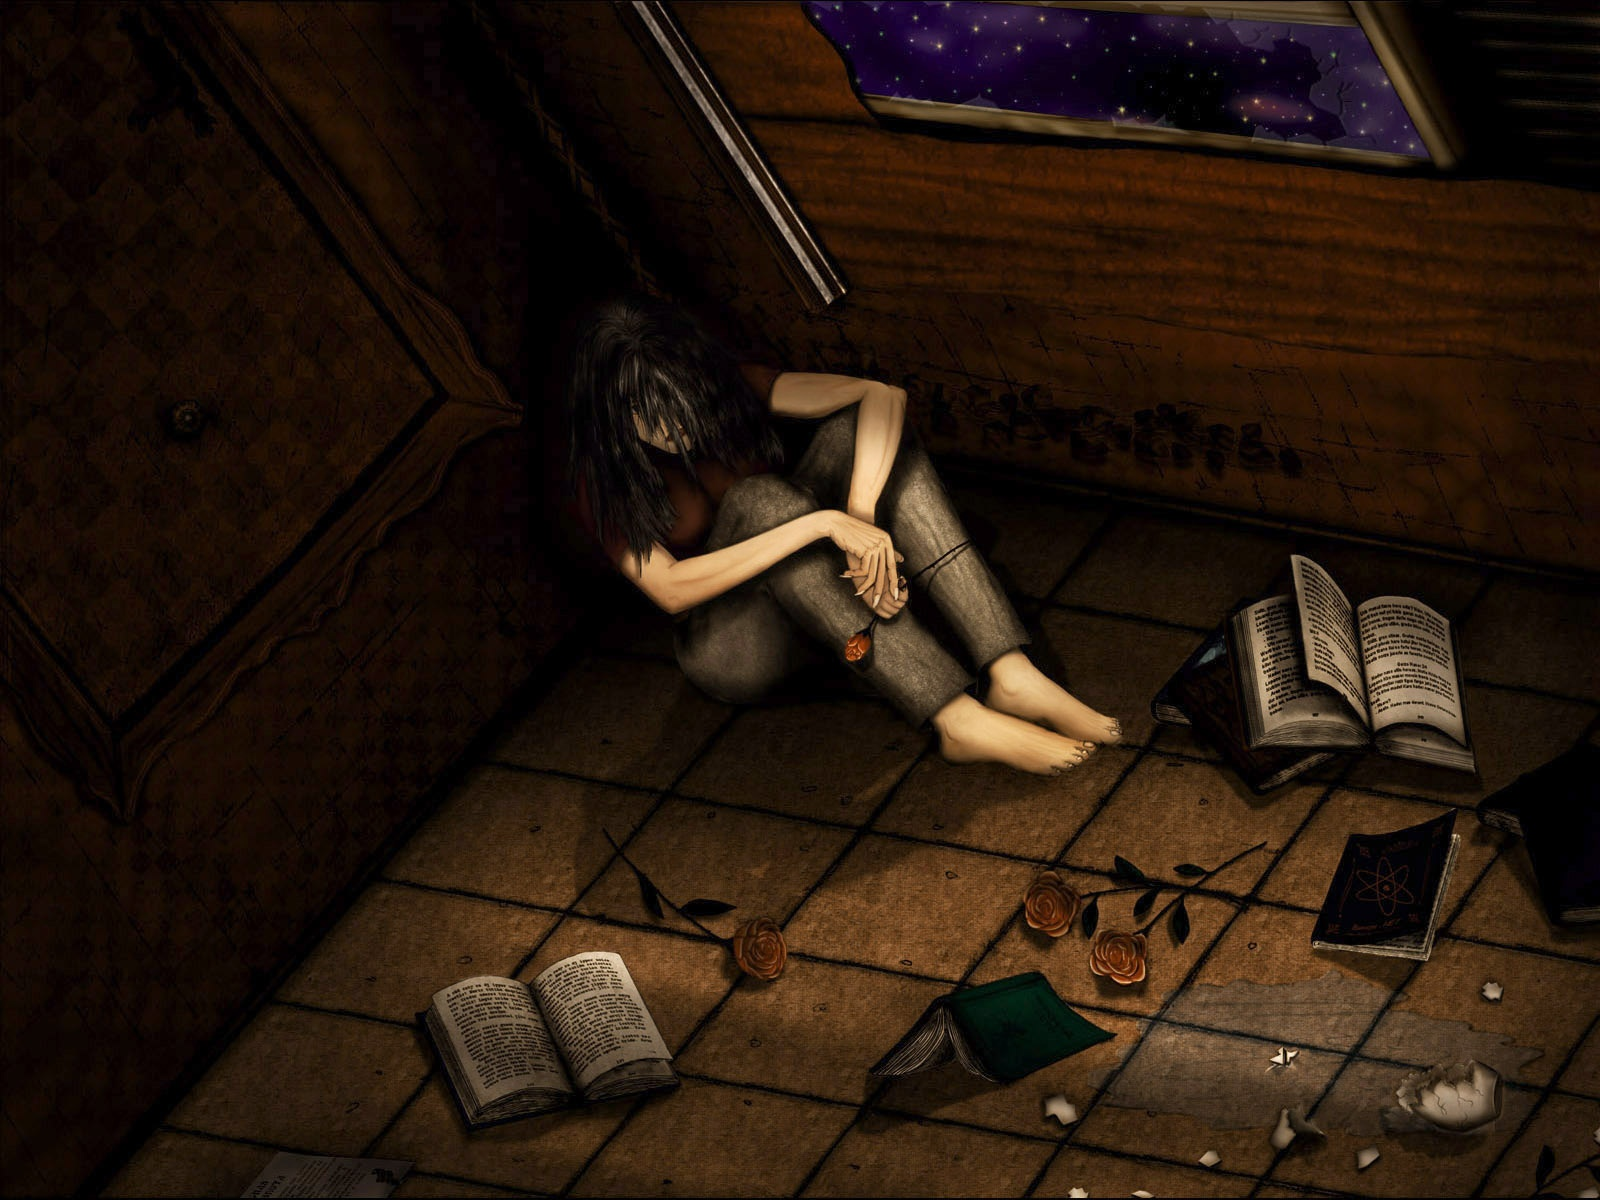 http://1.bp.blogspot.com/-uCz9GThHRJ8/TXC3DX2FMwI/AAAAAAAAGFQ/LiiQ89p39nY/s1600/Drawn_wallpapers_Loneliness_sadness-sad-boy-alone-handmade-wallpapers-1200-1600-1900-2100-2200-high-quality%2Bwallpapers-jago-dunya-lucy-pinder-nude-sexy-.jpg